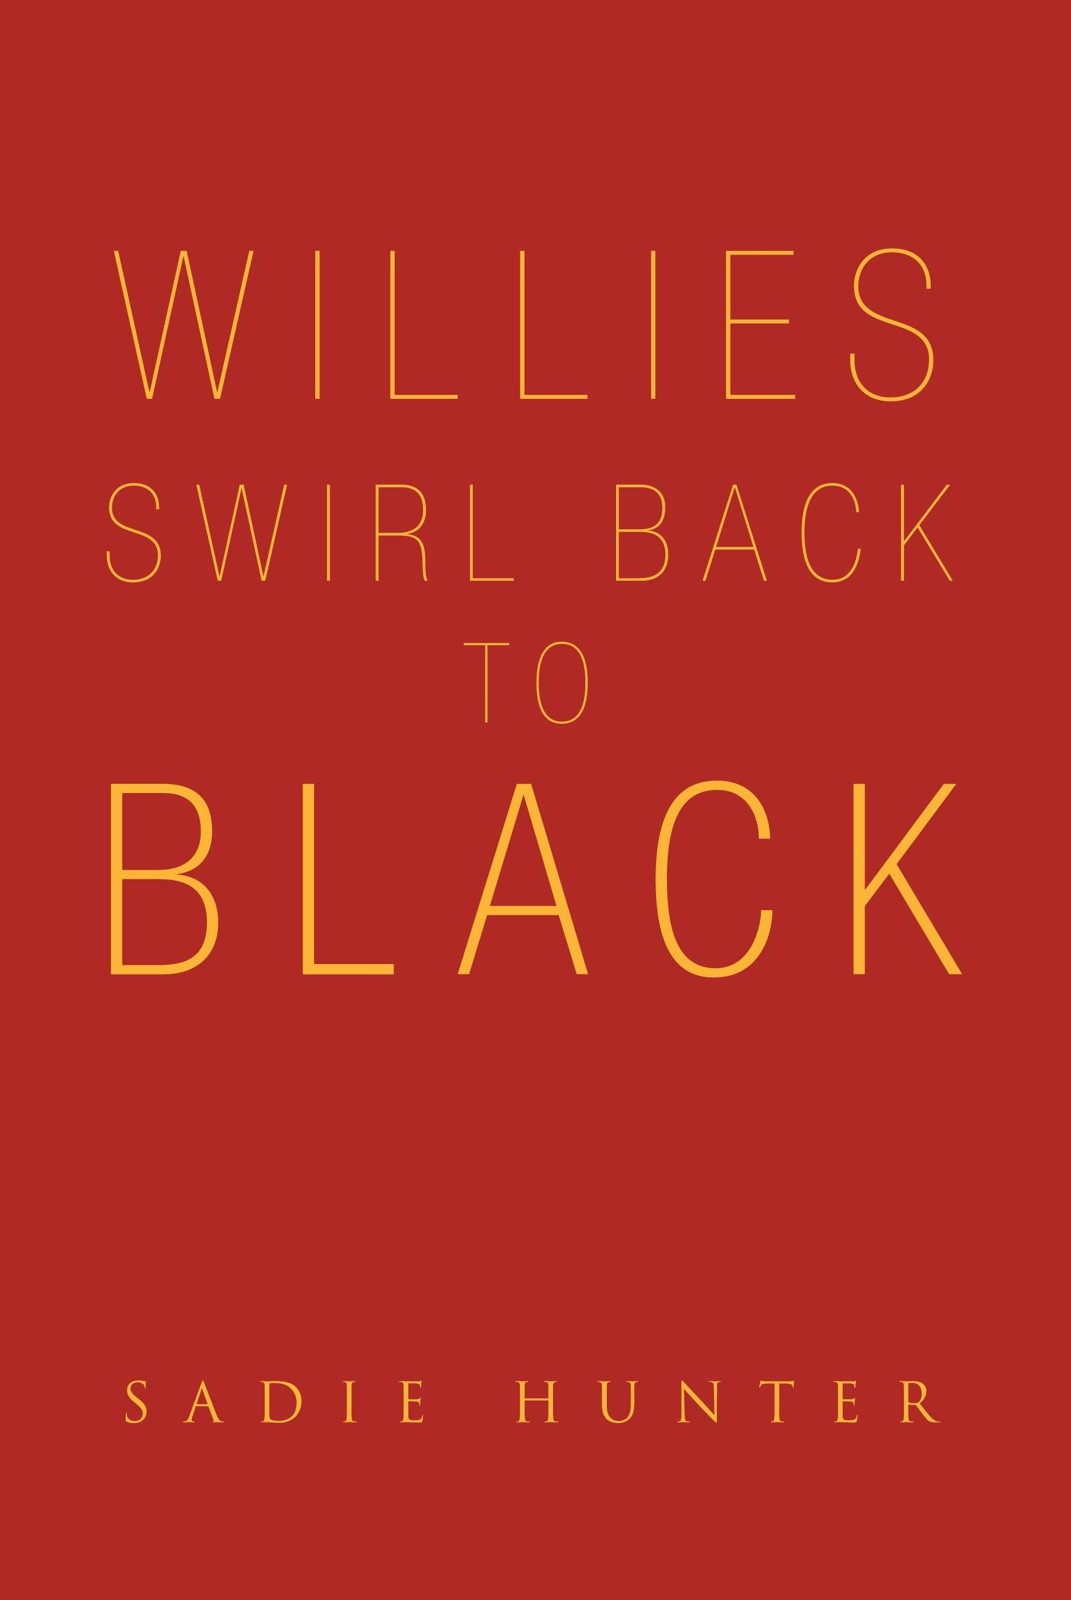 Willie's Swirl Back to Black By: Sadie Hunter